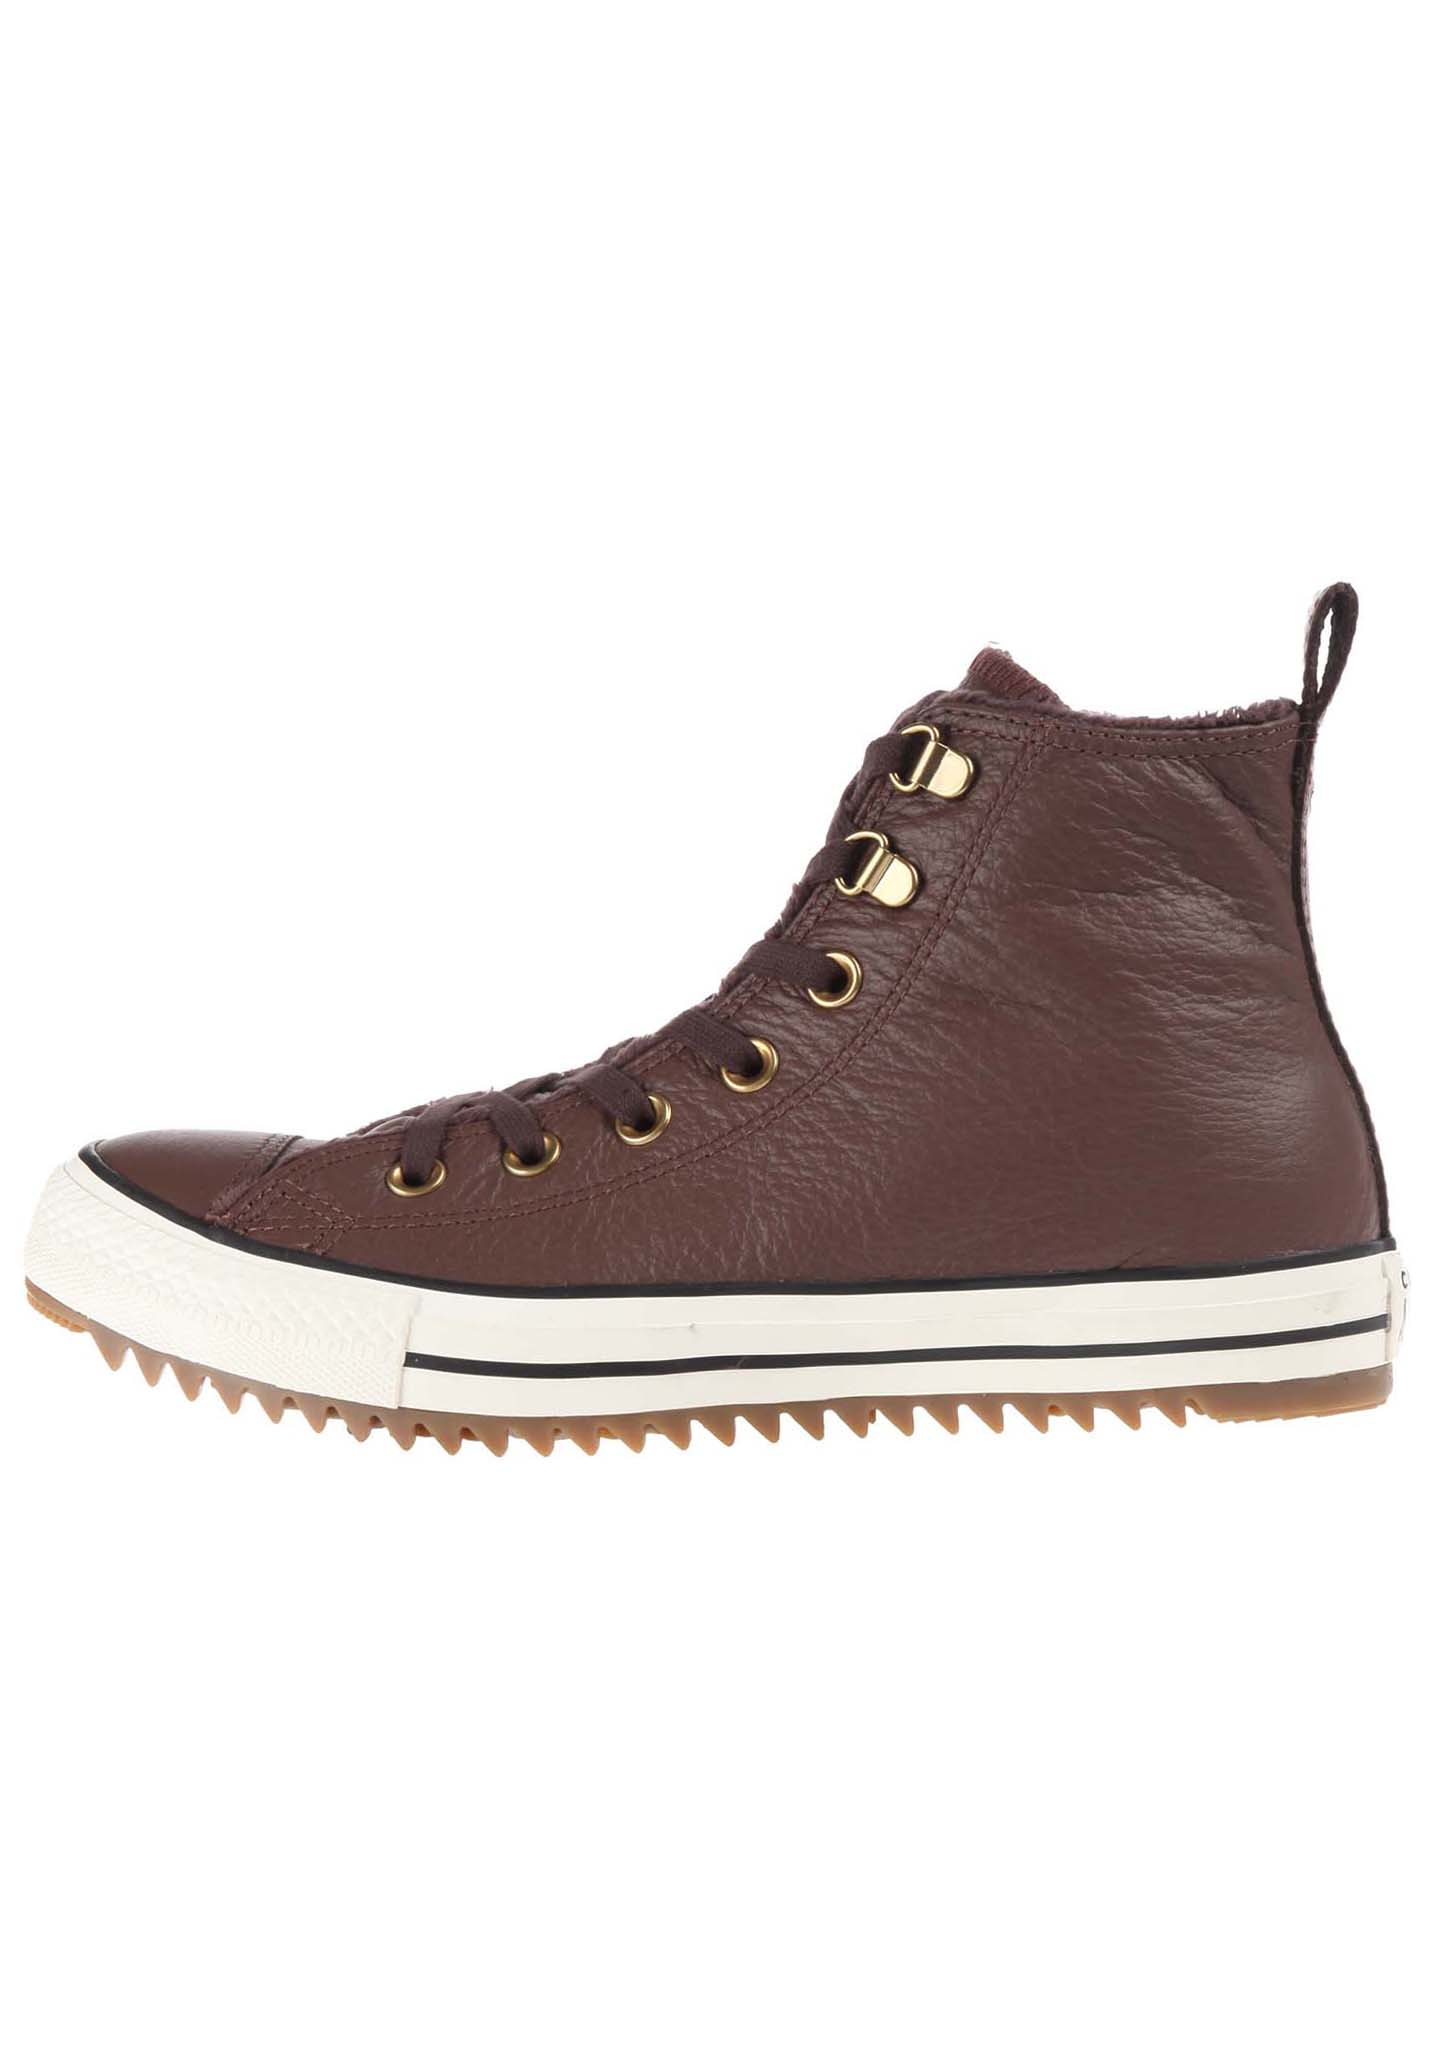 c8df3518113c Converse Chuck Taylor All Star Hi Hiker - Sneakers for Women - Brown -  Planet Sports